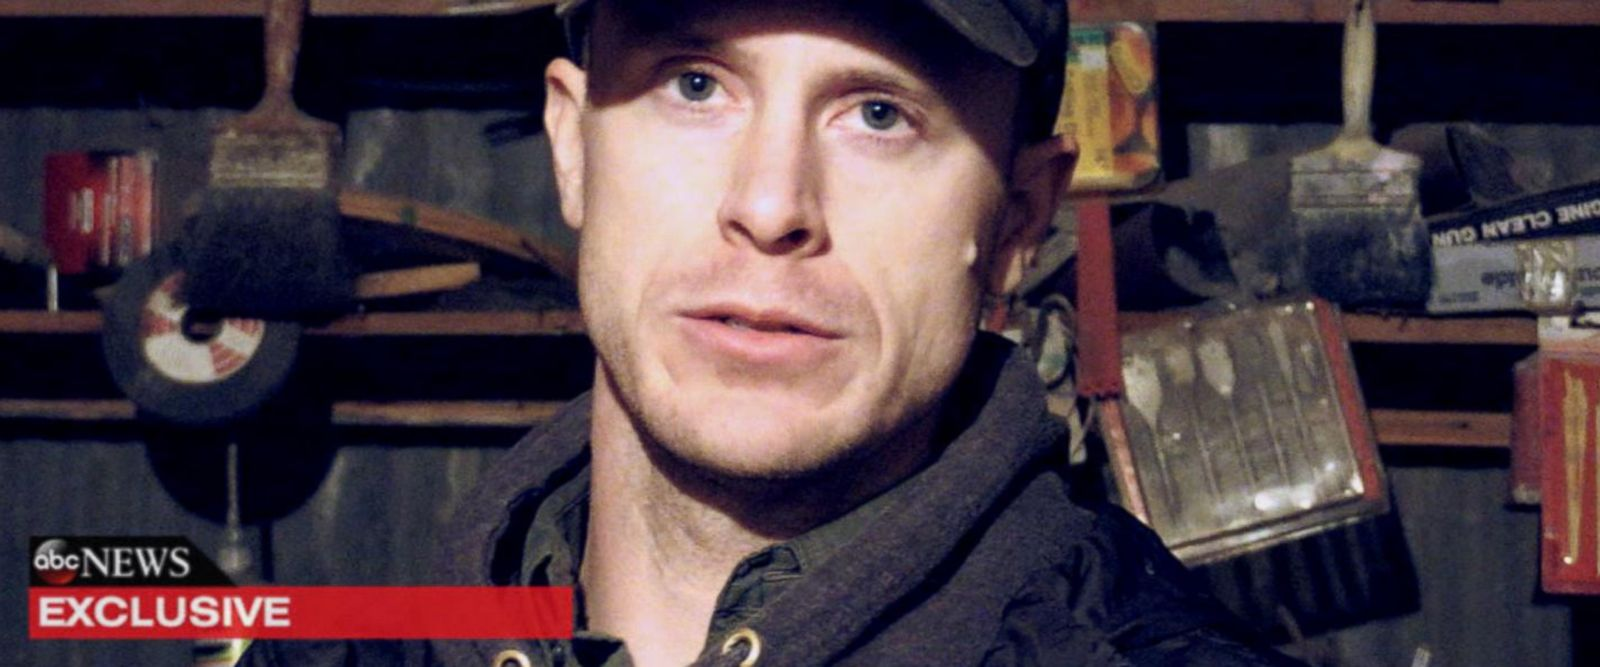 VIDEO: Bowe Bergdahl responds to those who called him a traitor